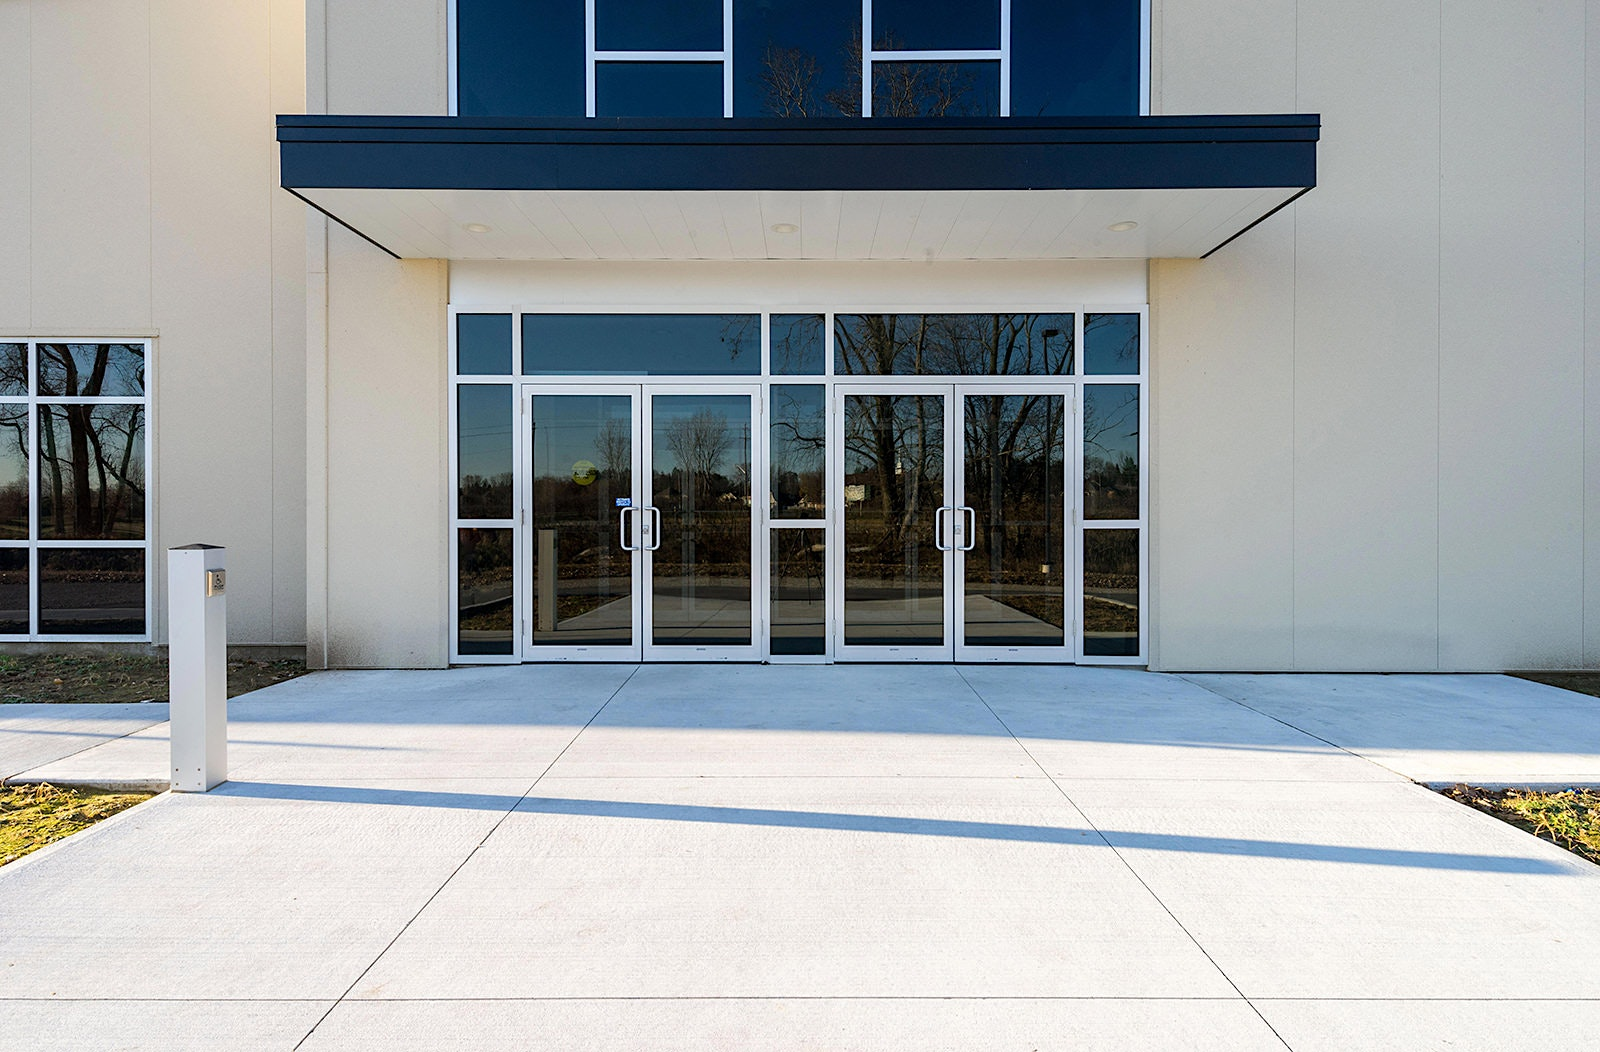 exterior-entrance-photograph-scott-webb-photography